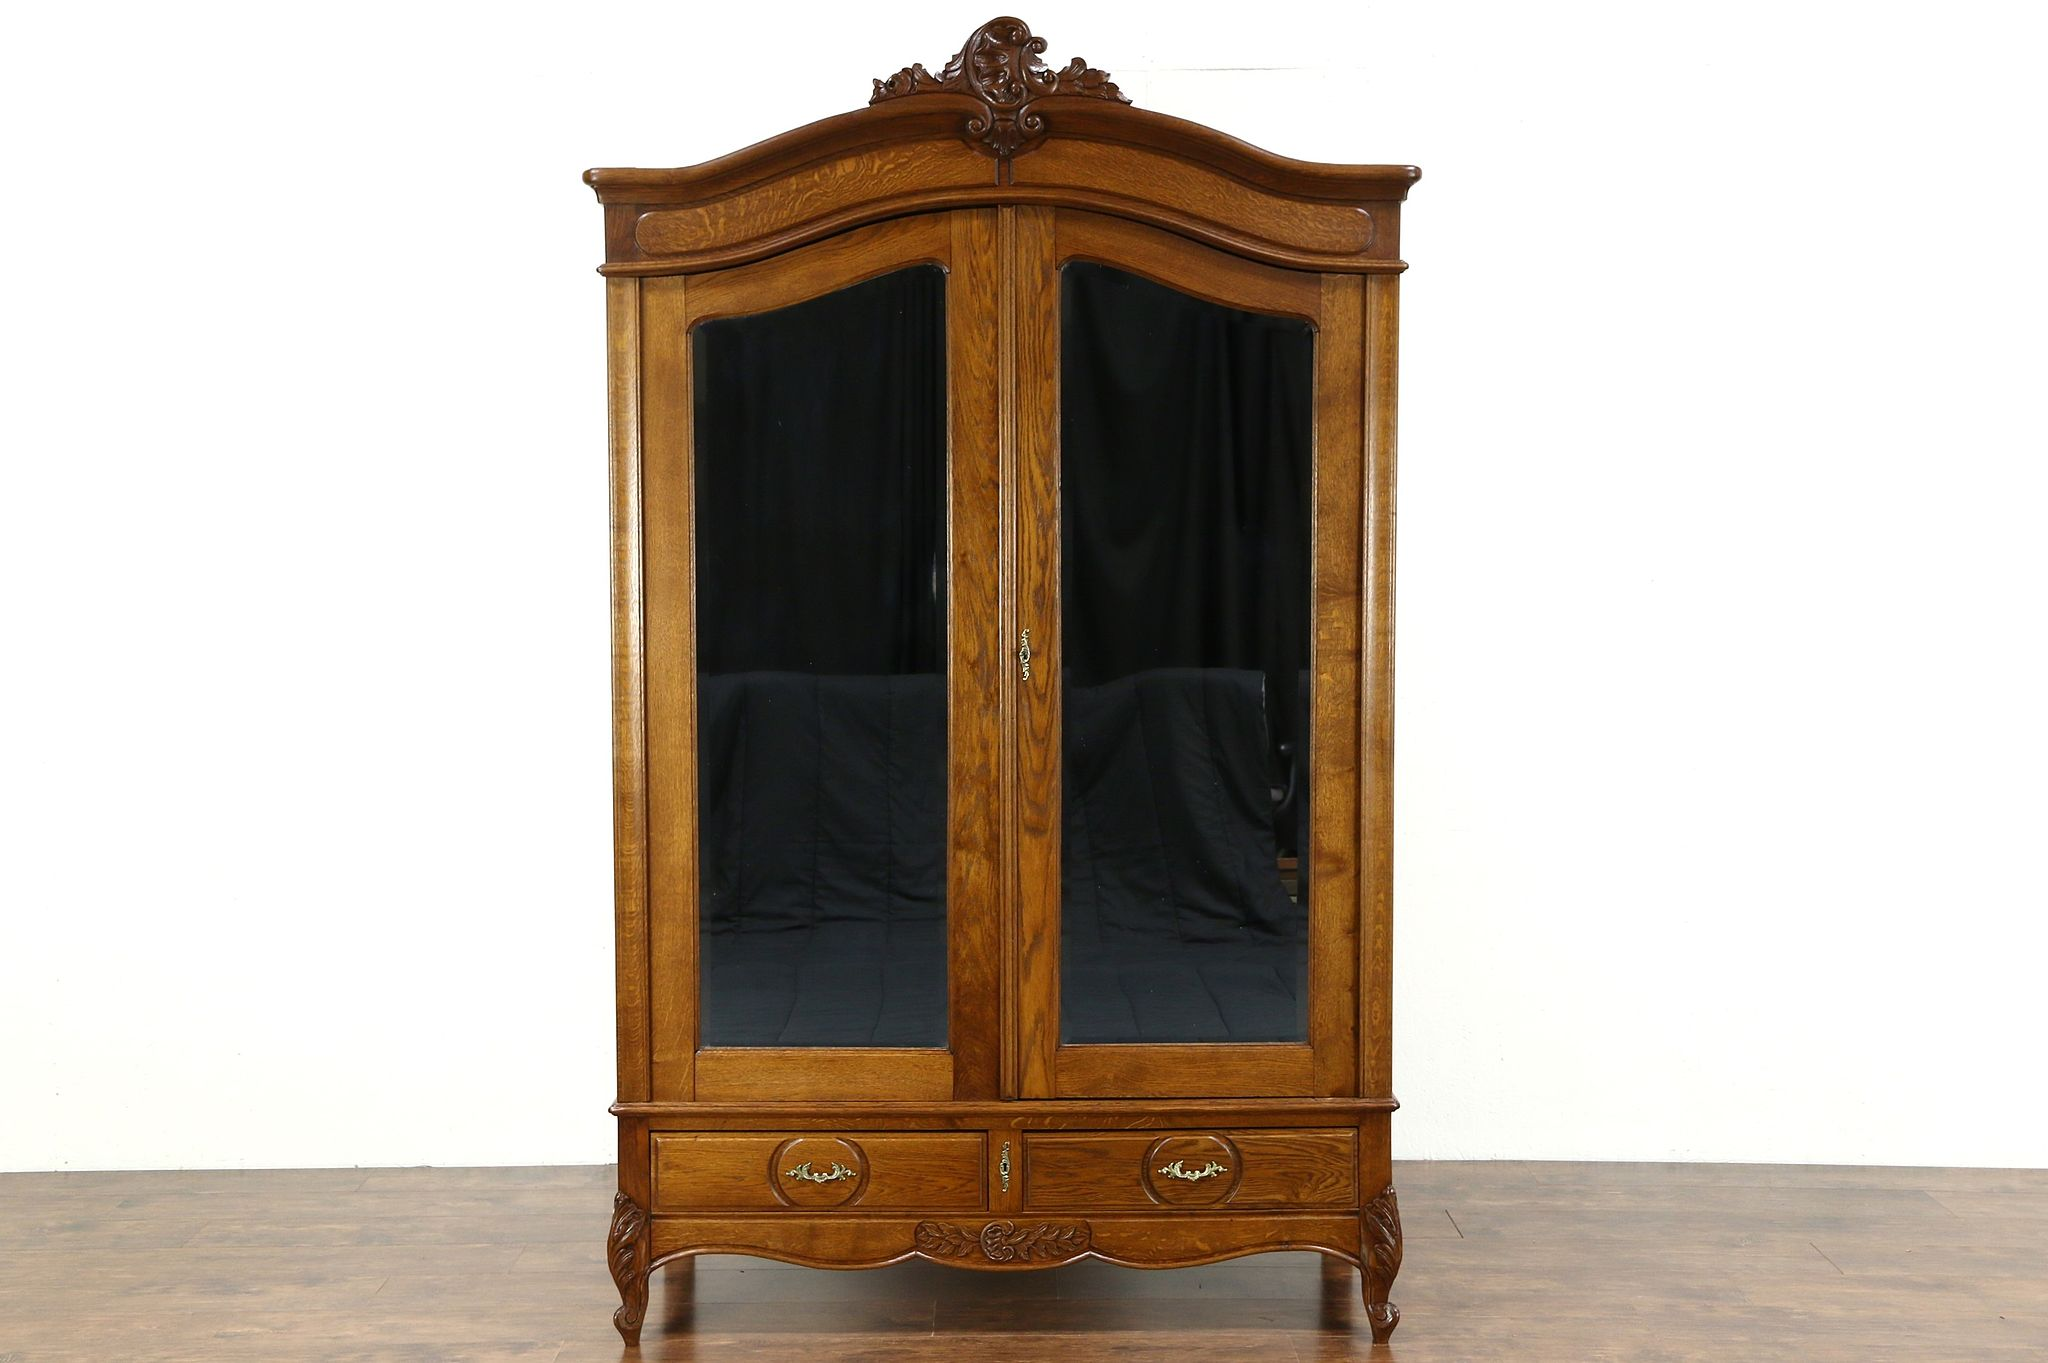 Incroyable Country French 1920 Antique Oak Armoire, Wardrobe Or Closet, Beveled  Mirrors ...